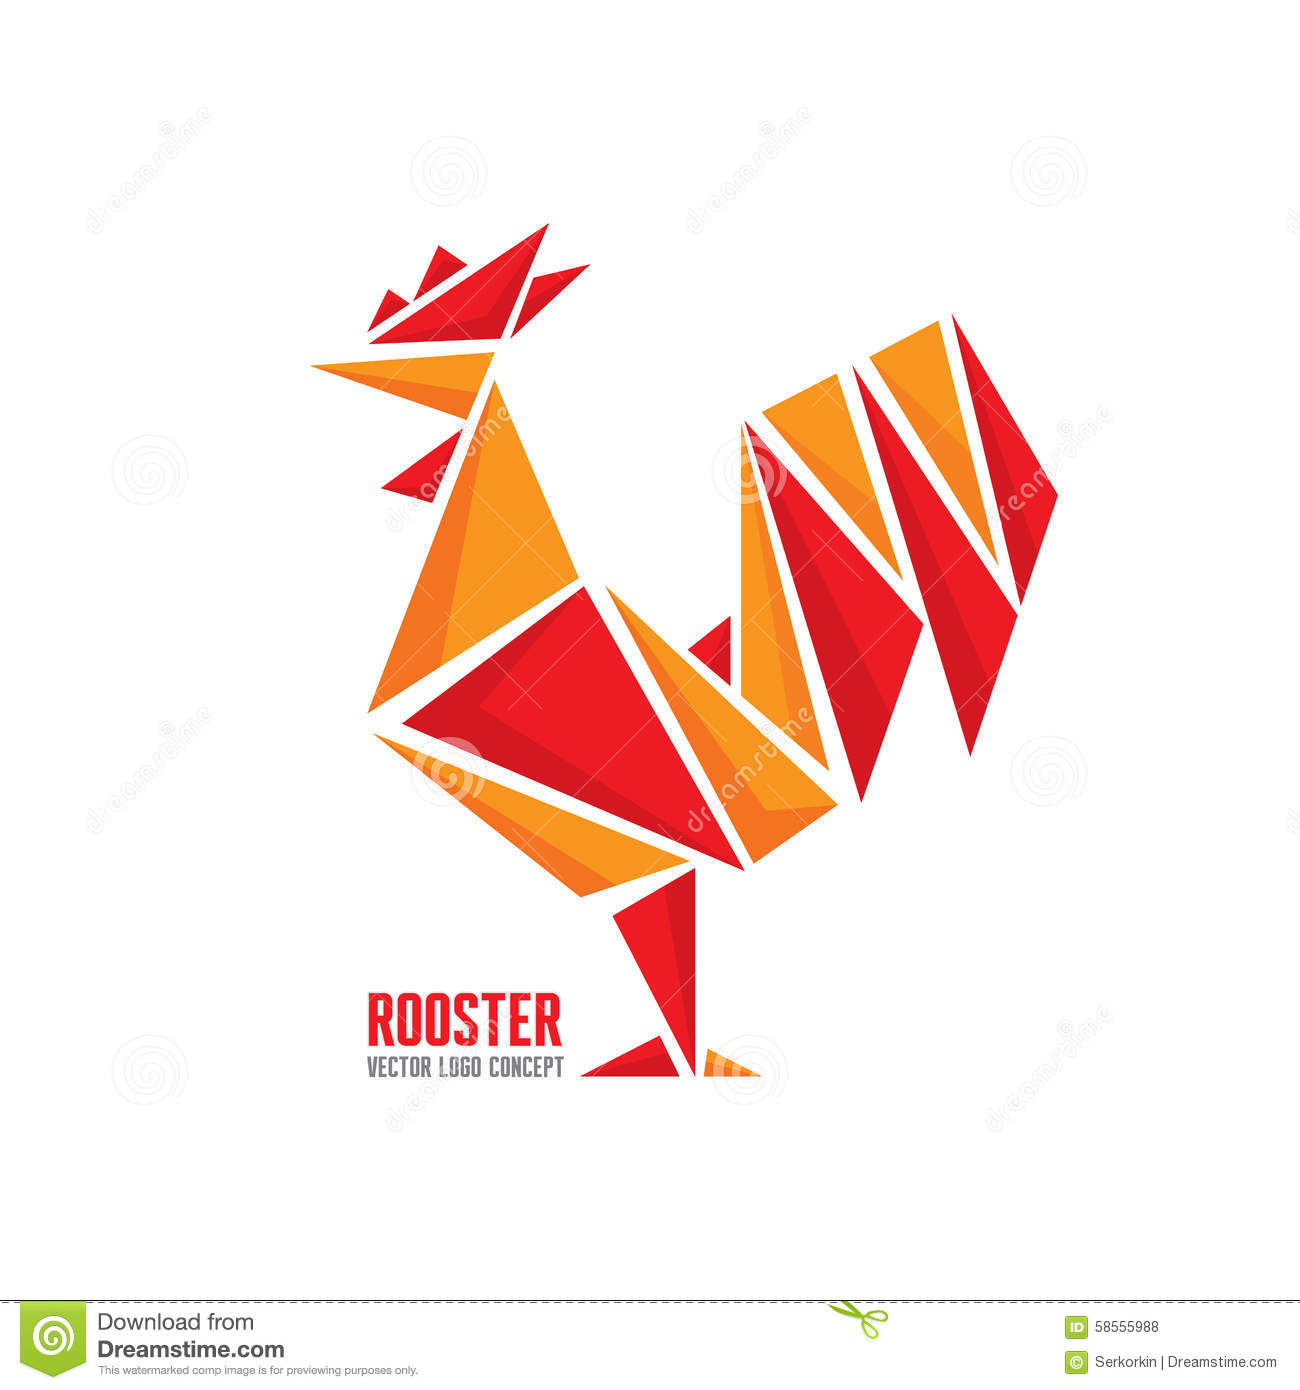 Rooster vector logo concept bird abstract geometric illustration logo vector logo template - Cock designing ...